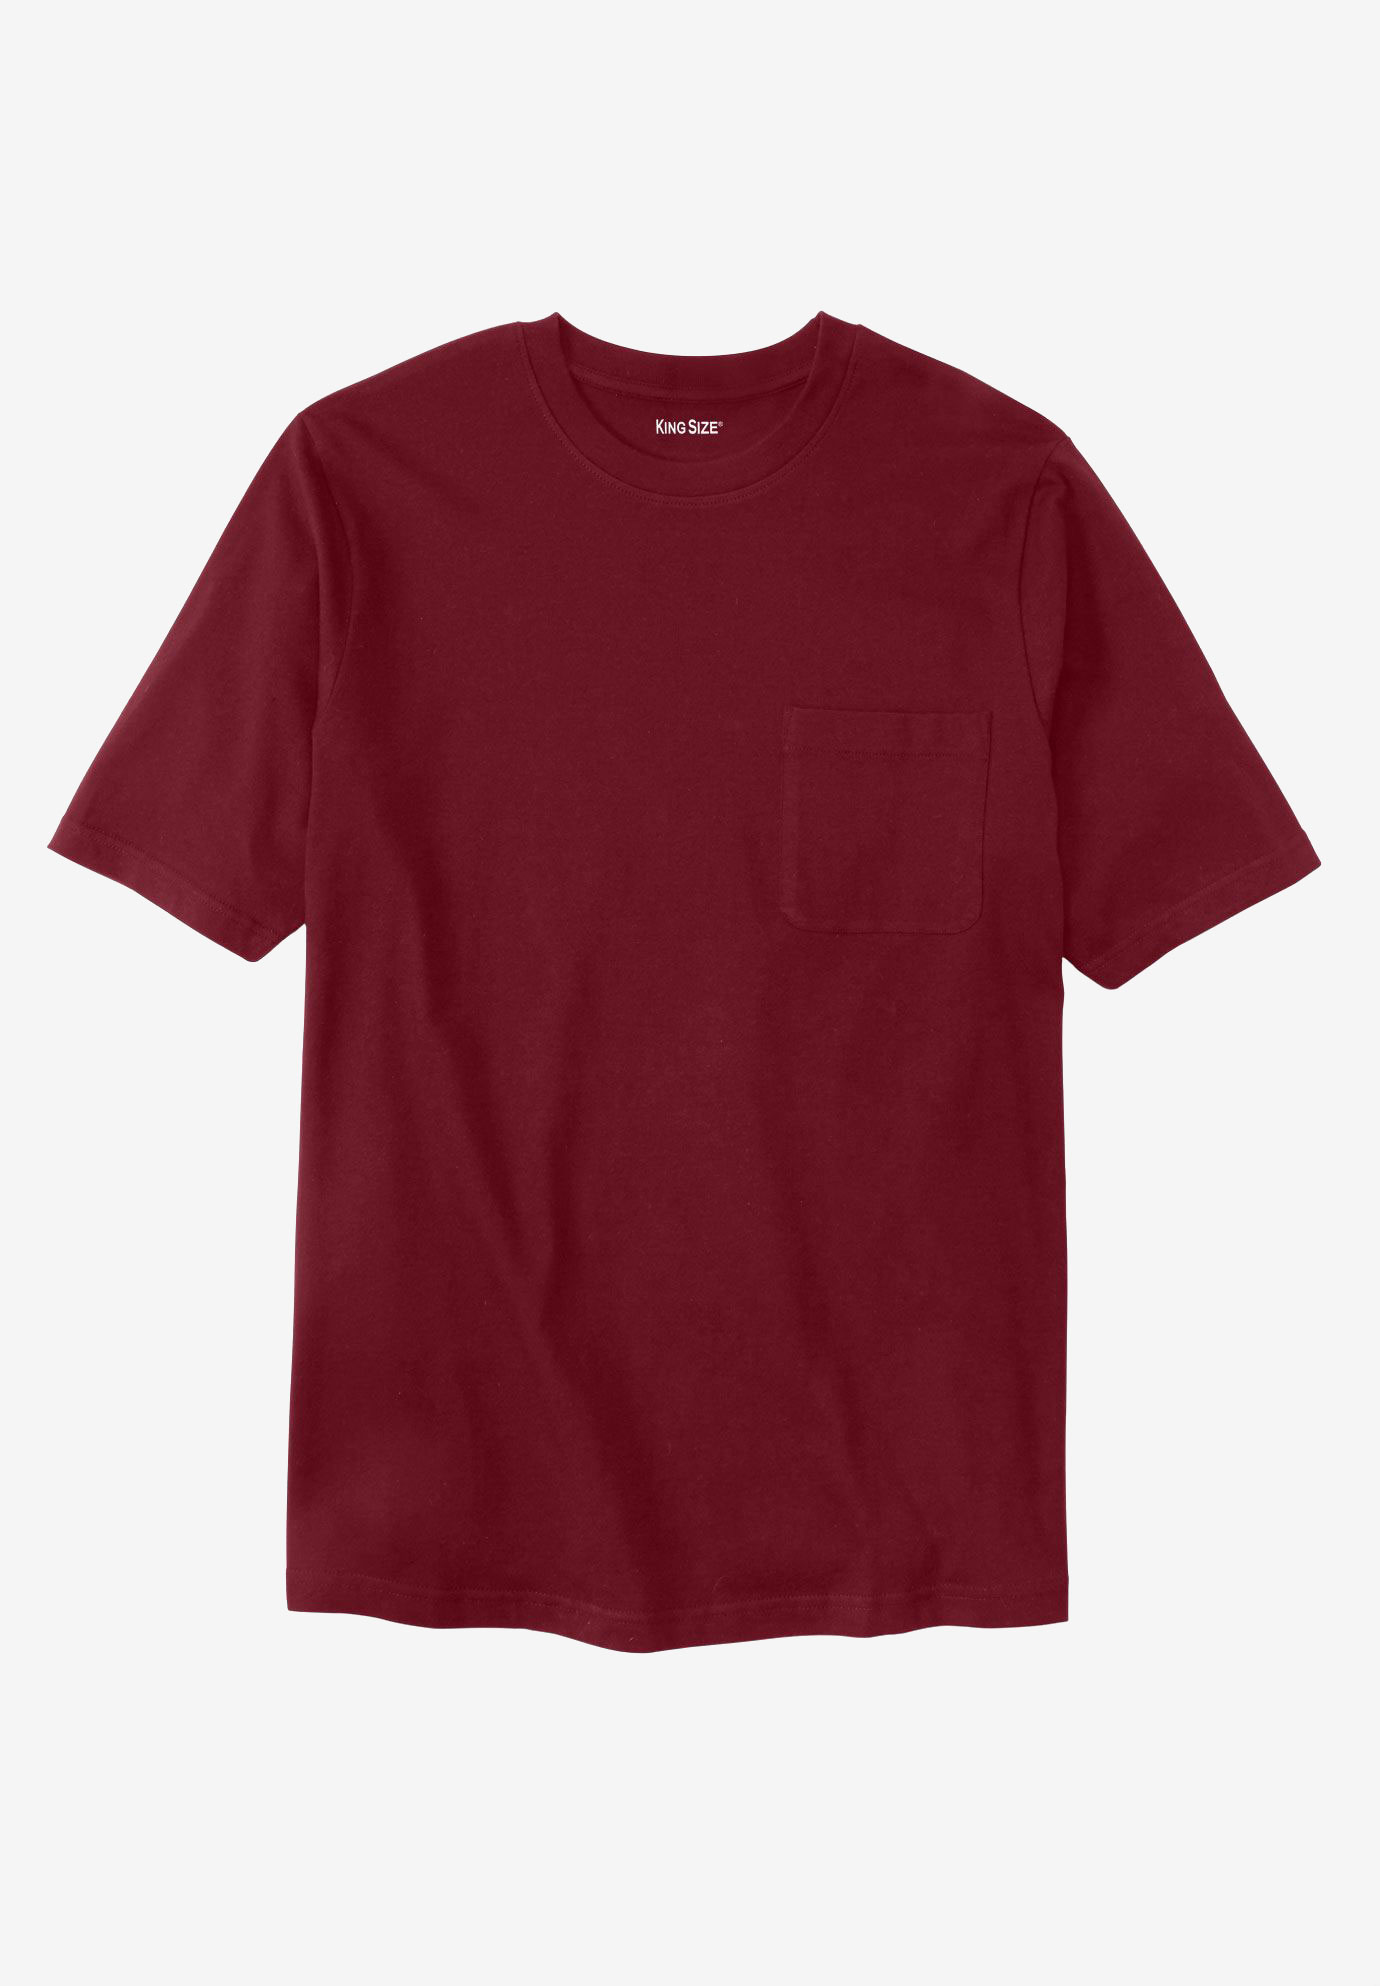 Shrink-Less™ Lightweight Crewneck Modern Fit Tee,